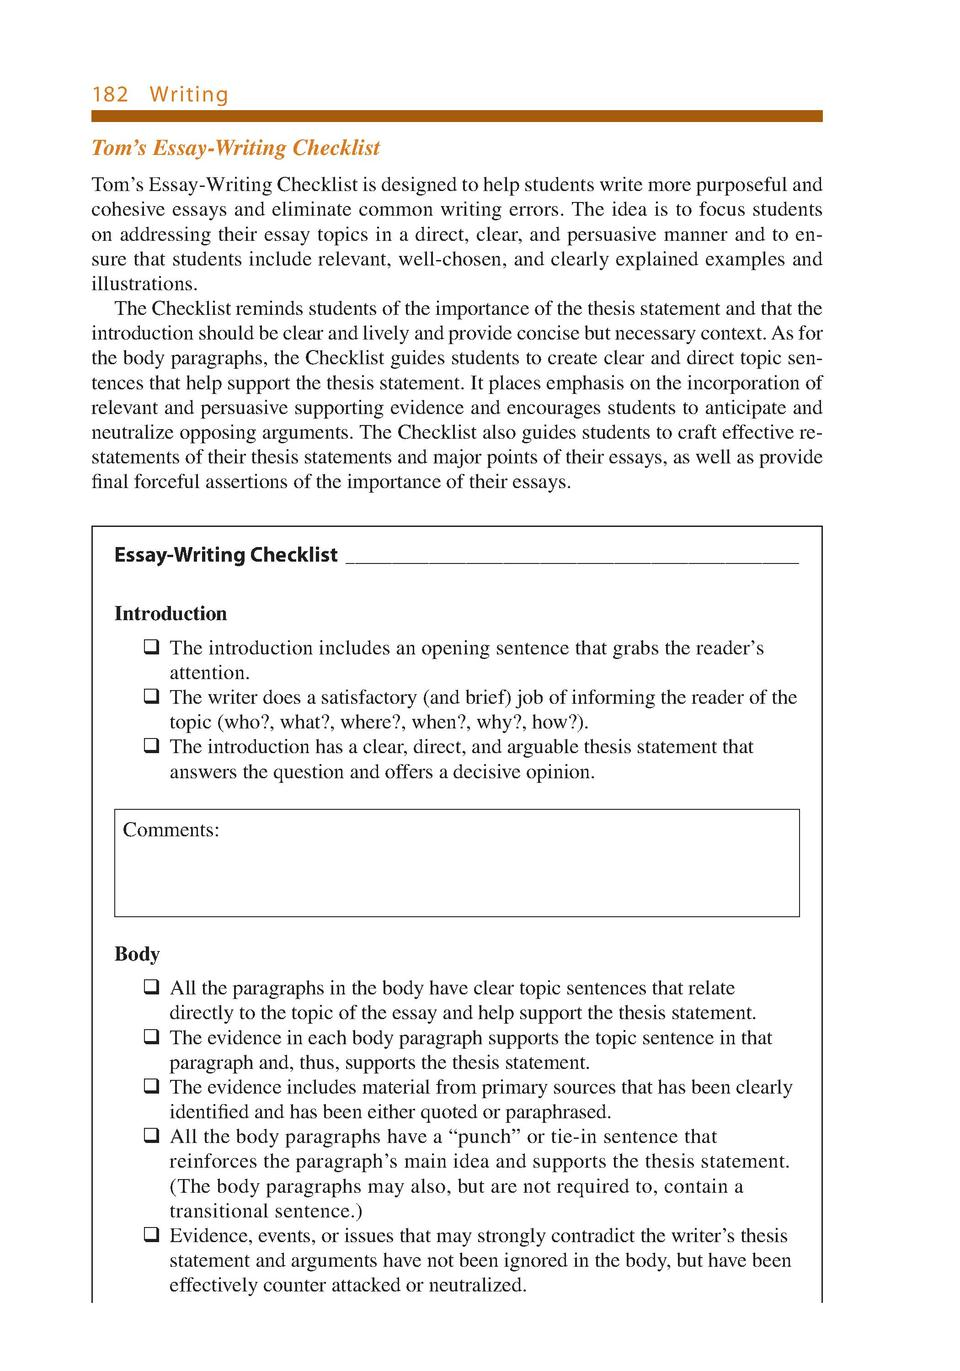 ett writing chapter com 182 writing tom s essay writing checklist tom s essay writing checklist is designed introduction